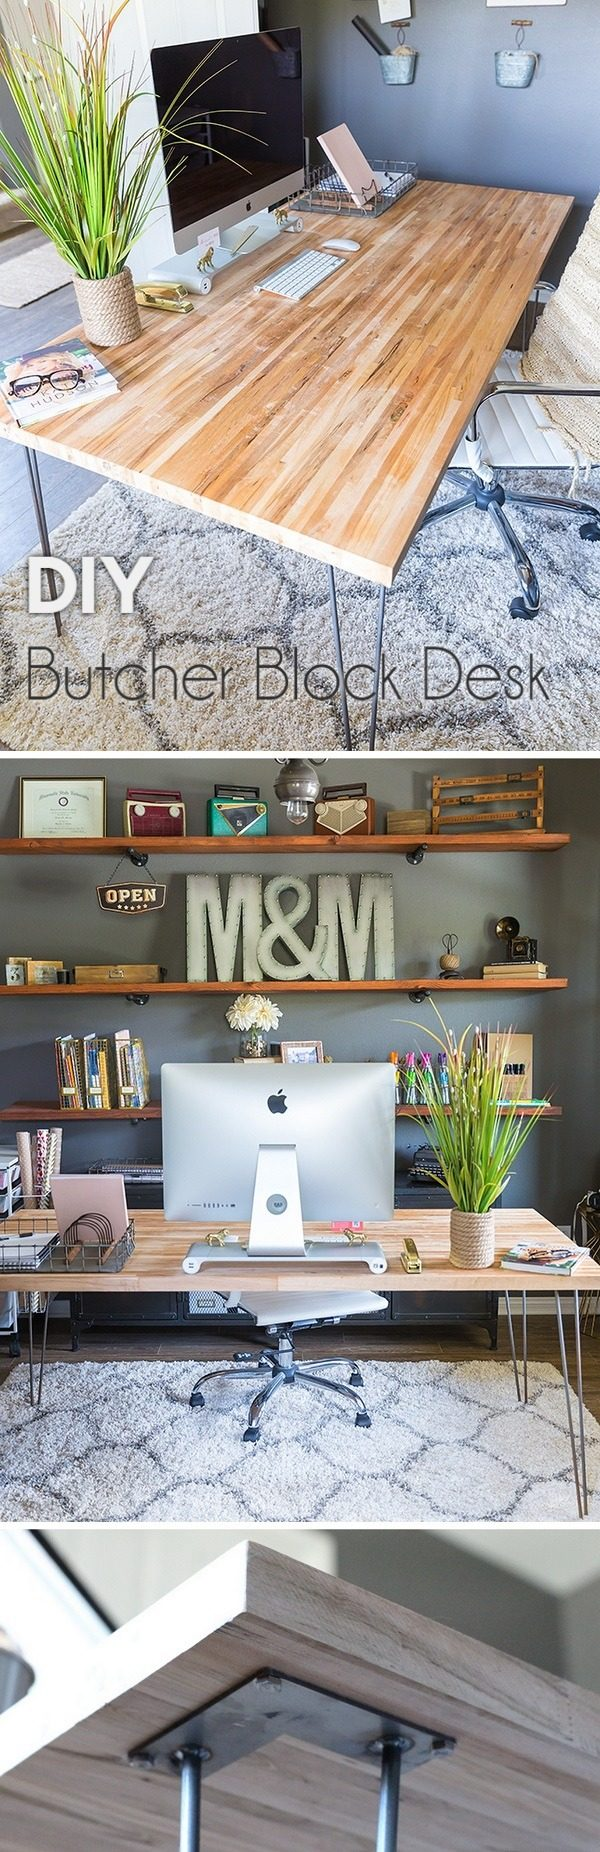 Check out the tutorial how to build a DIY butcher block desk